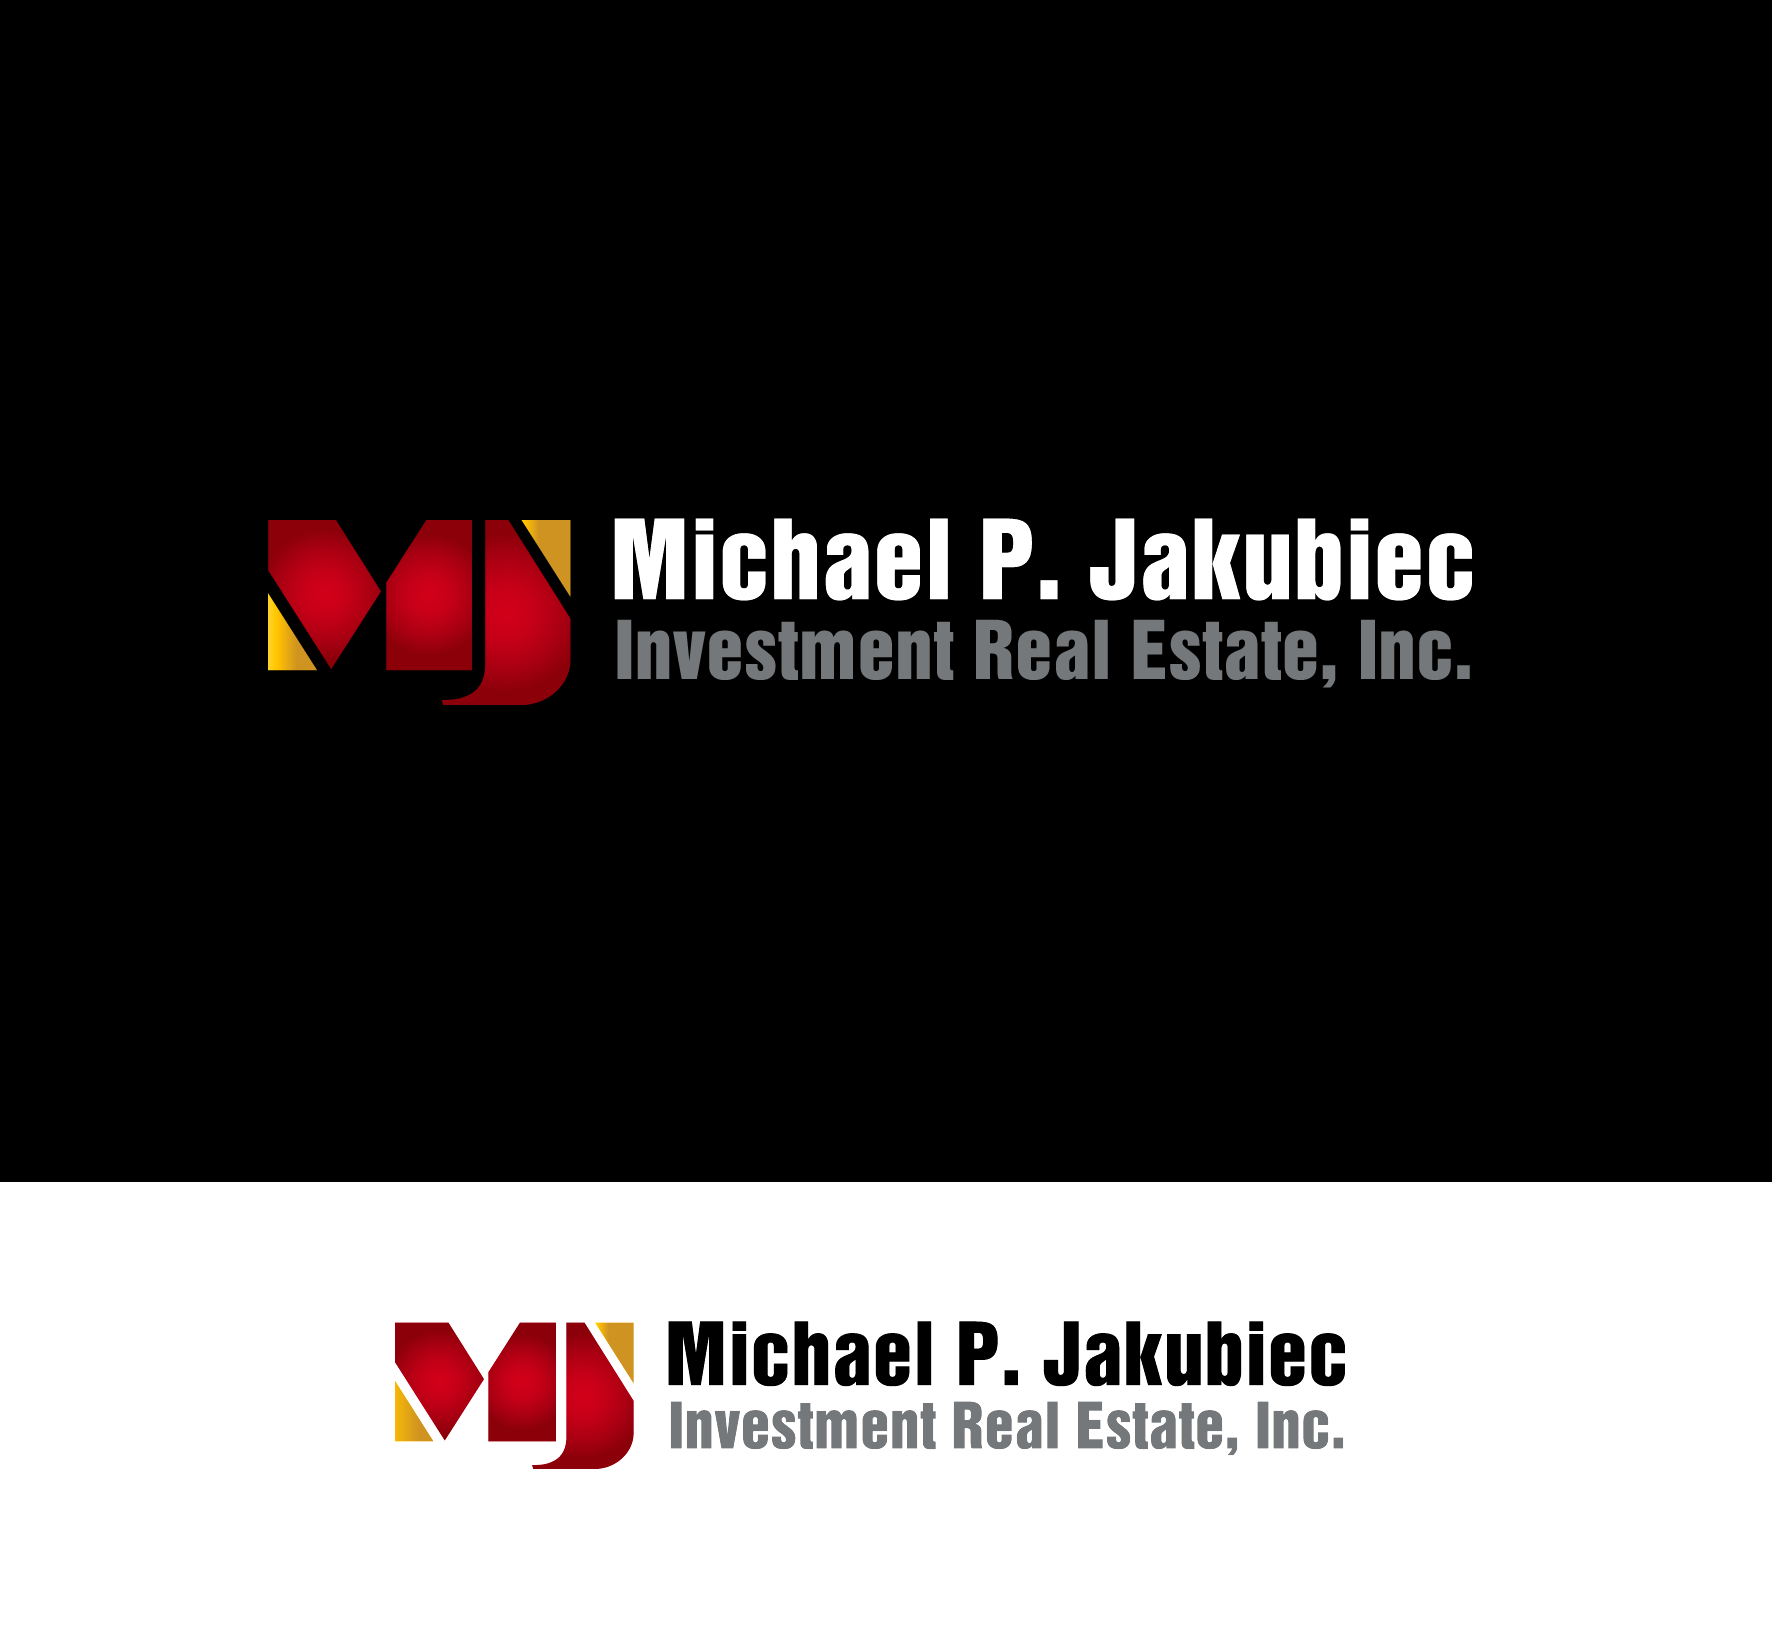 Logo Design by luna - Entry No. 34 in the Logo Design Contest New Logo Design for Michael P. Jakubiec Investment Real Estate, Inc..